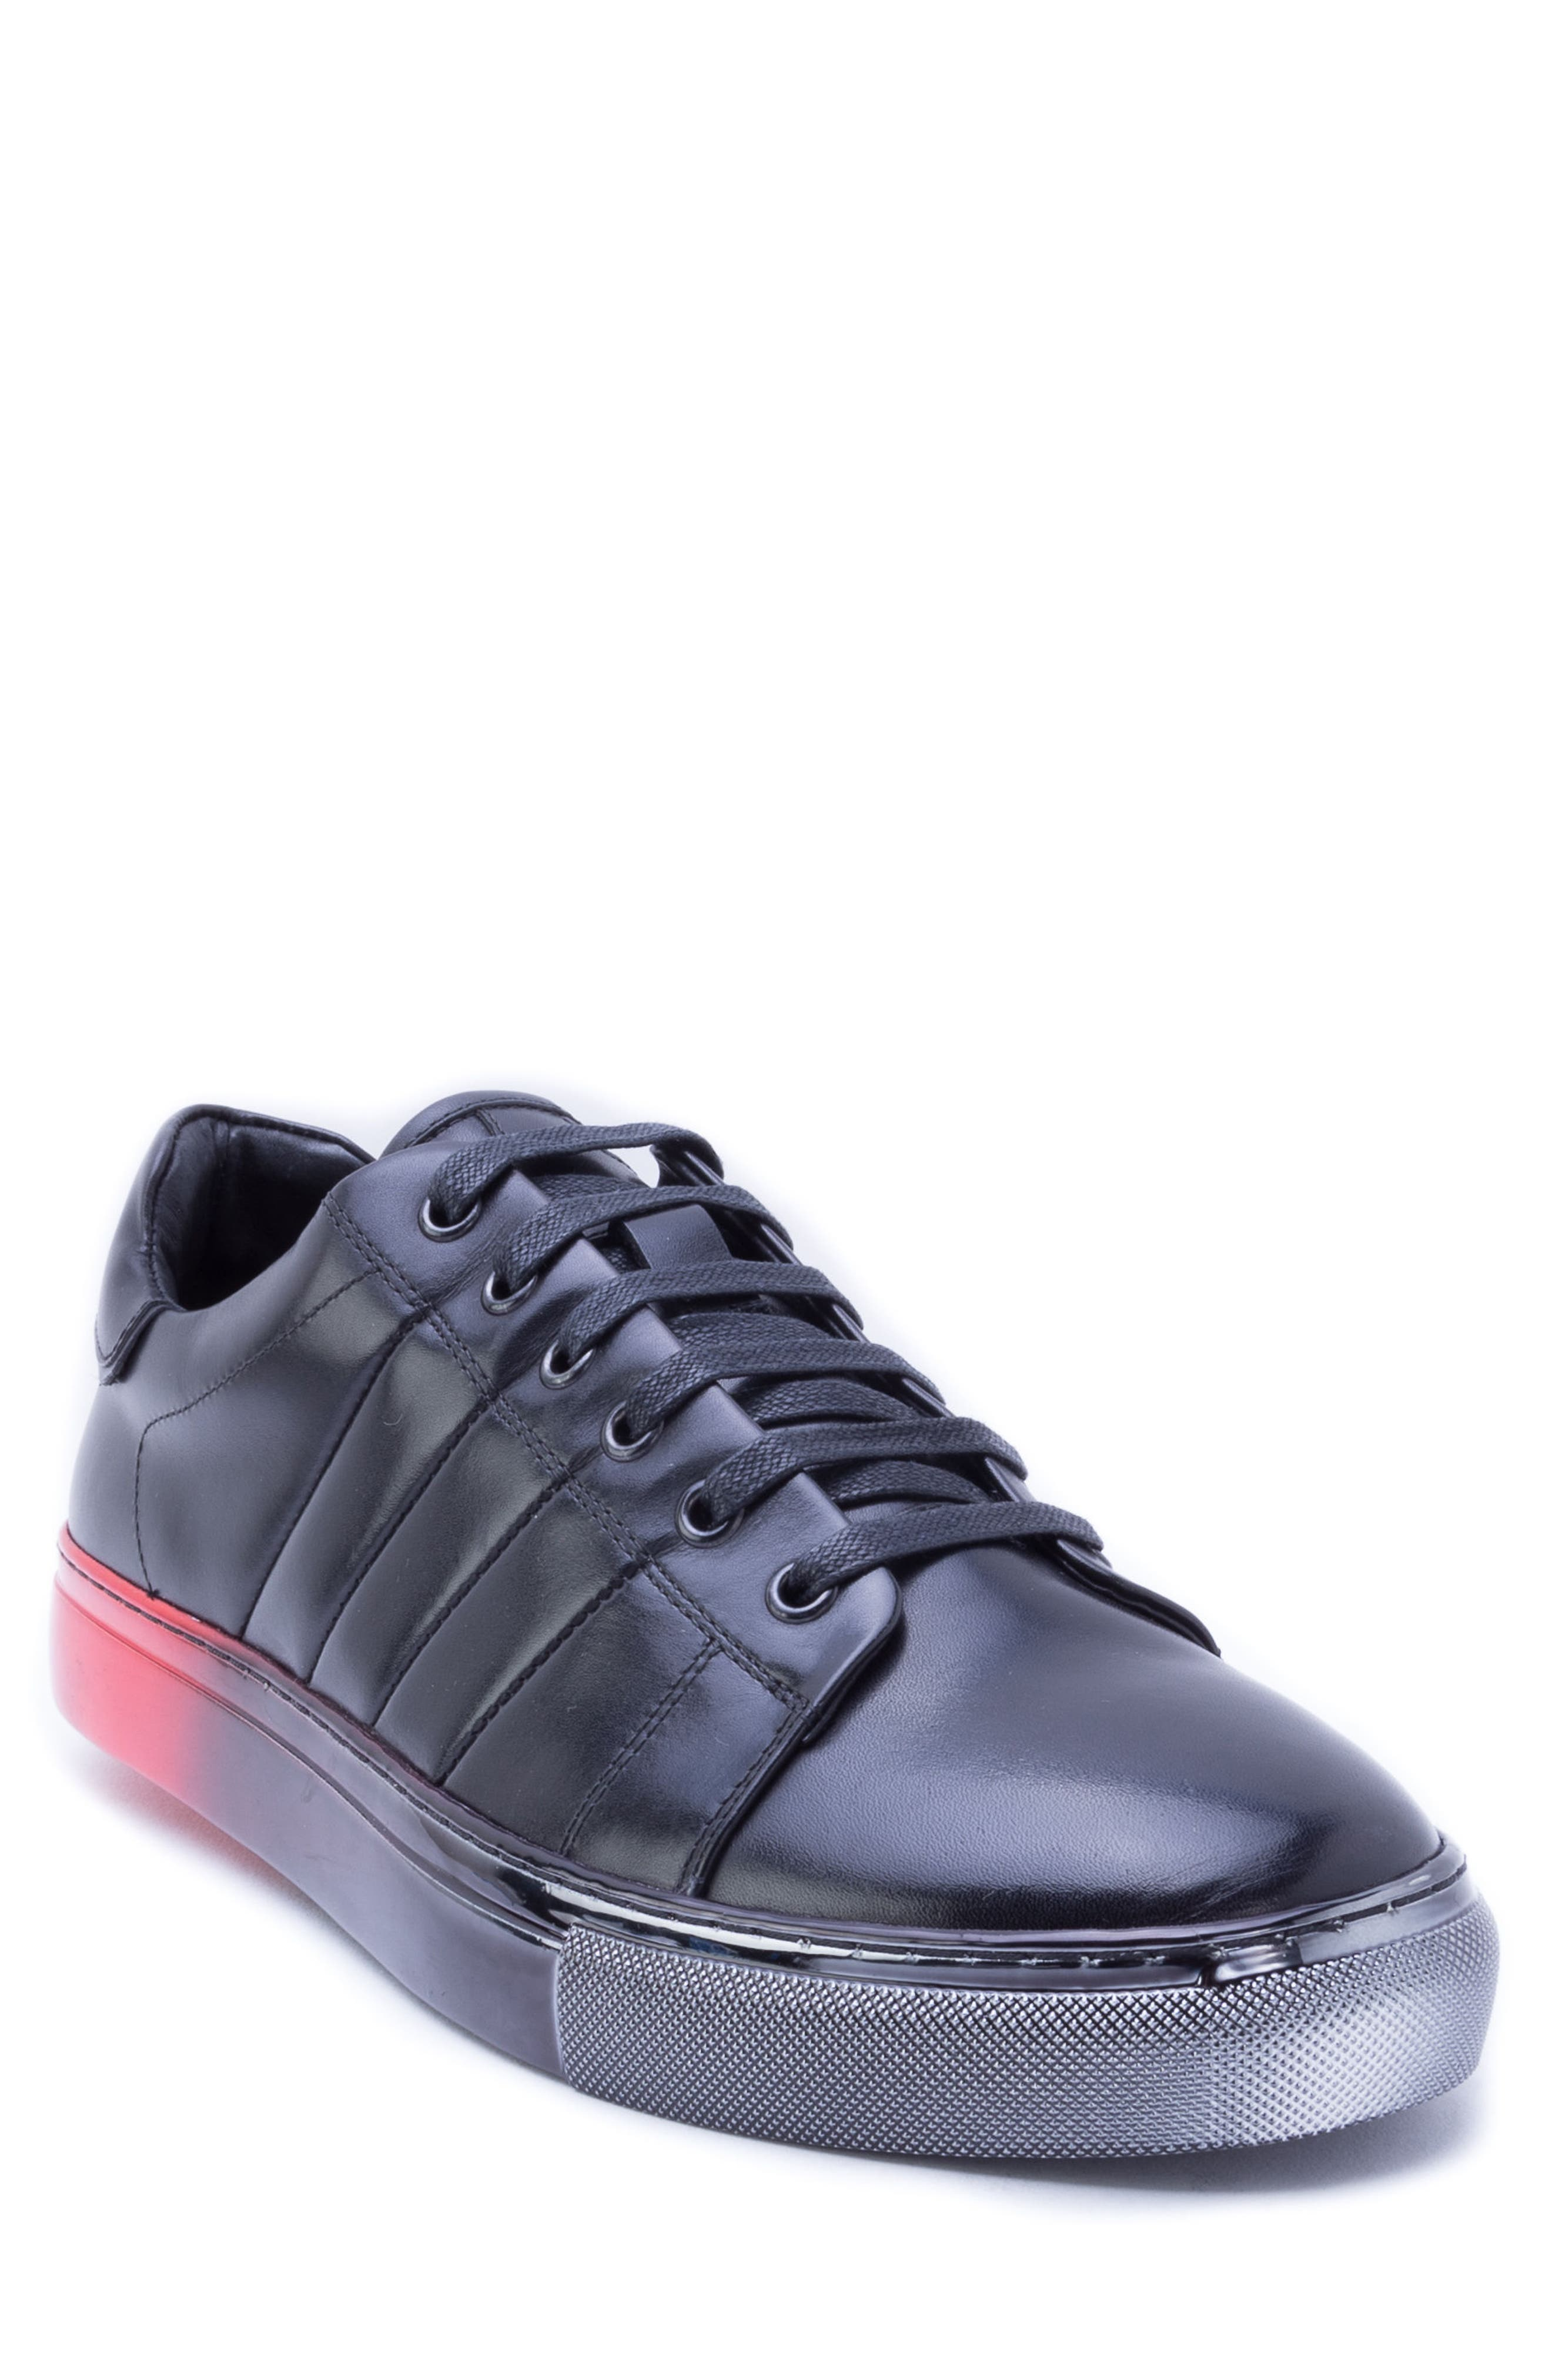 Duvall Sneaker,                         Main,                         color, BLACK LEATHER